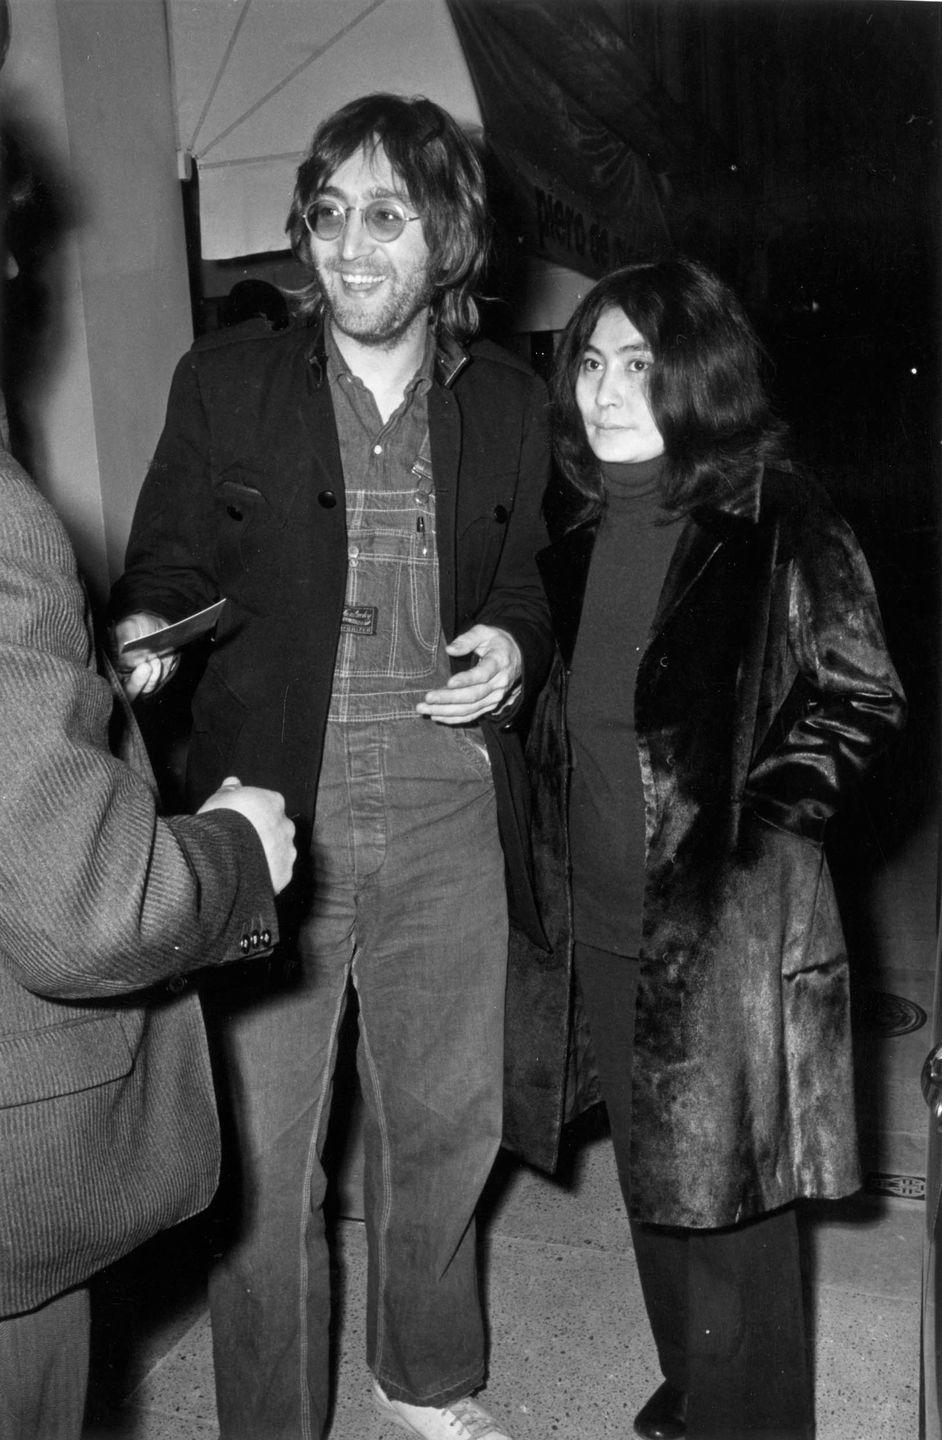 <p>John Lennon with his wife Yoko Ono at the E.M. Gallery party in London in 1971.</p>